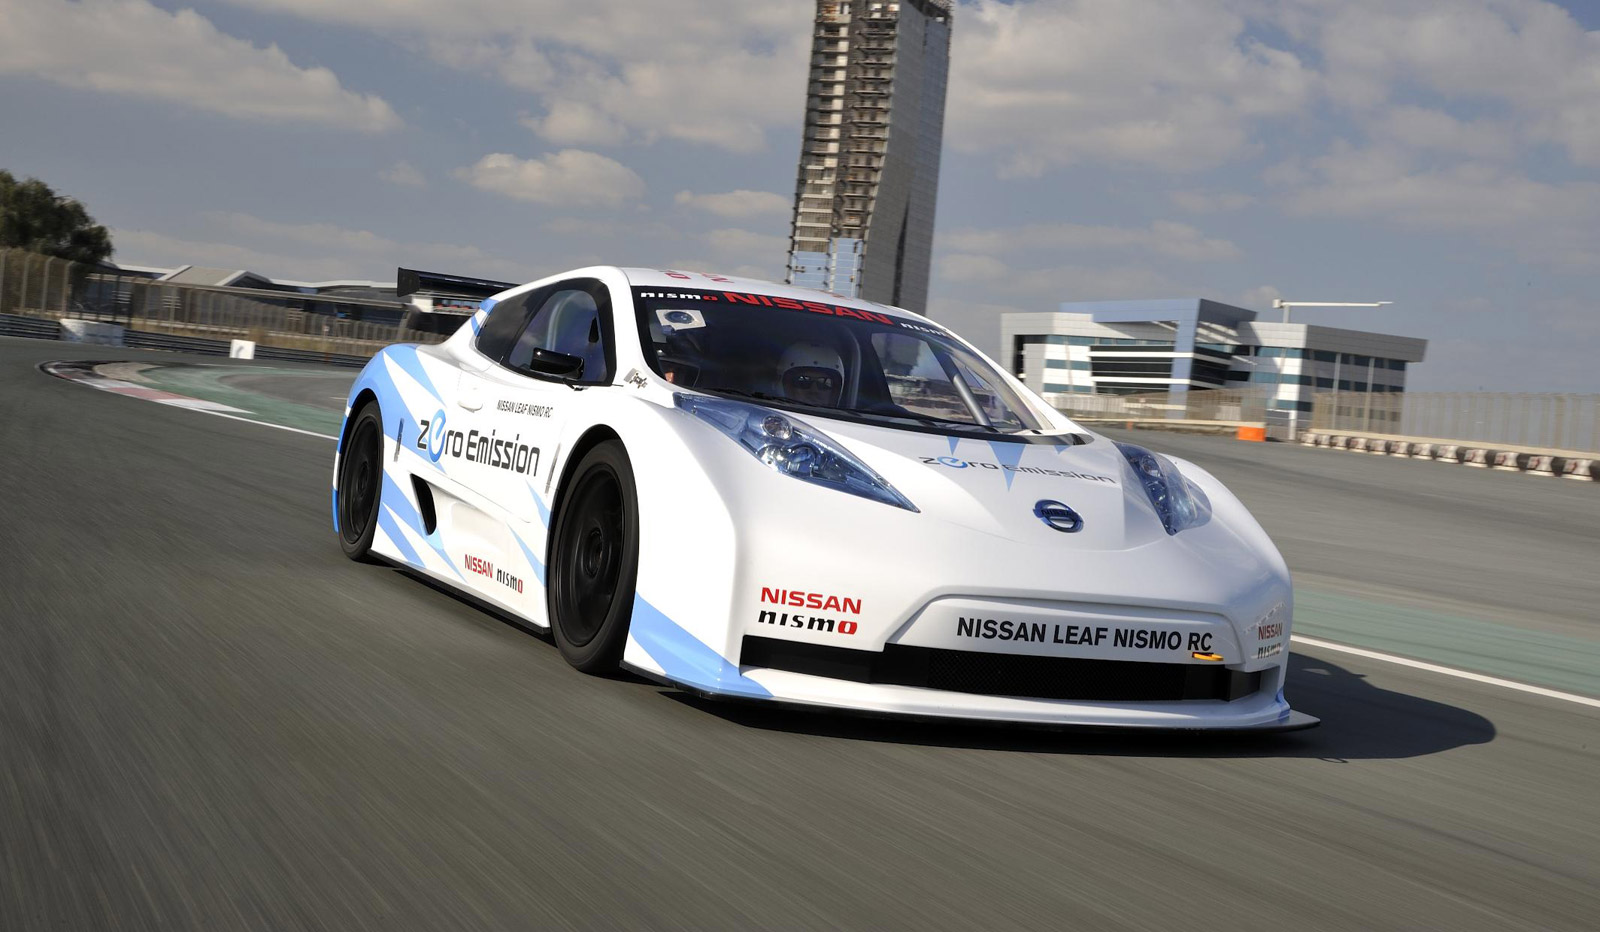 Nissan Gives Update On Leaf Nismo RC Electric Racer: Video